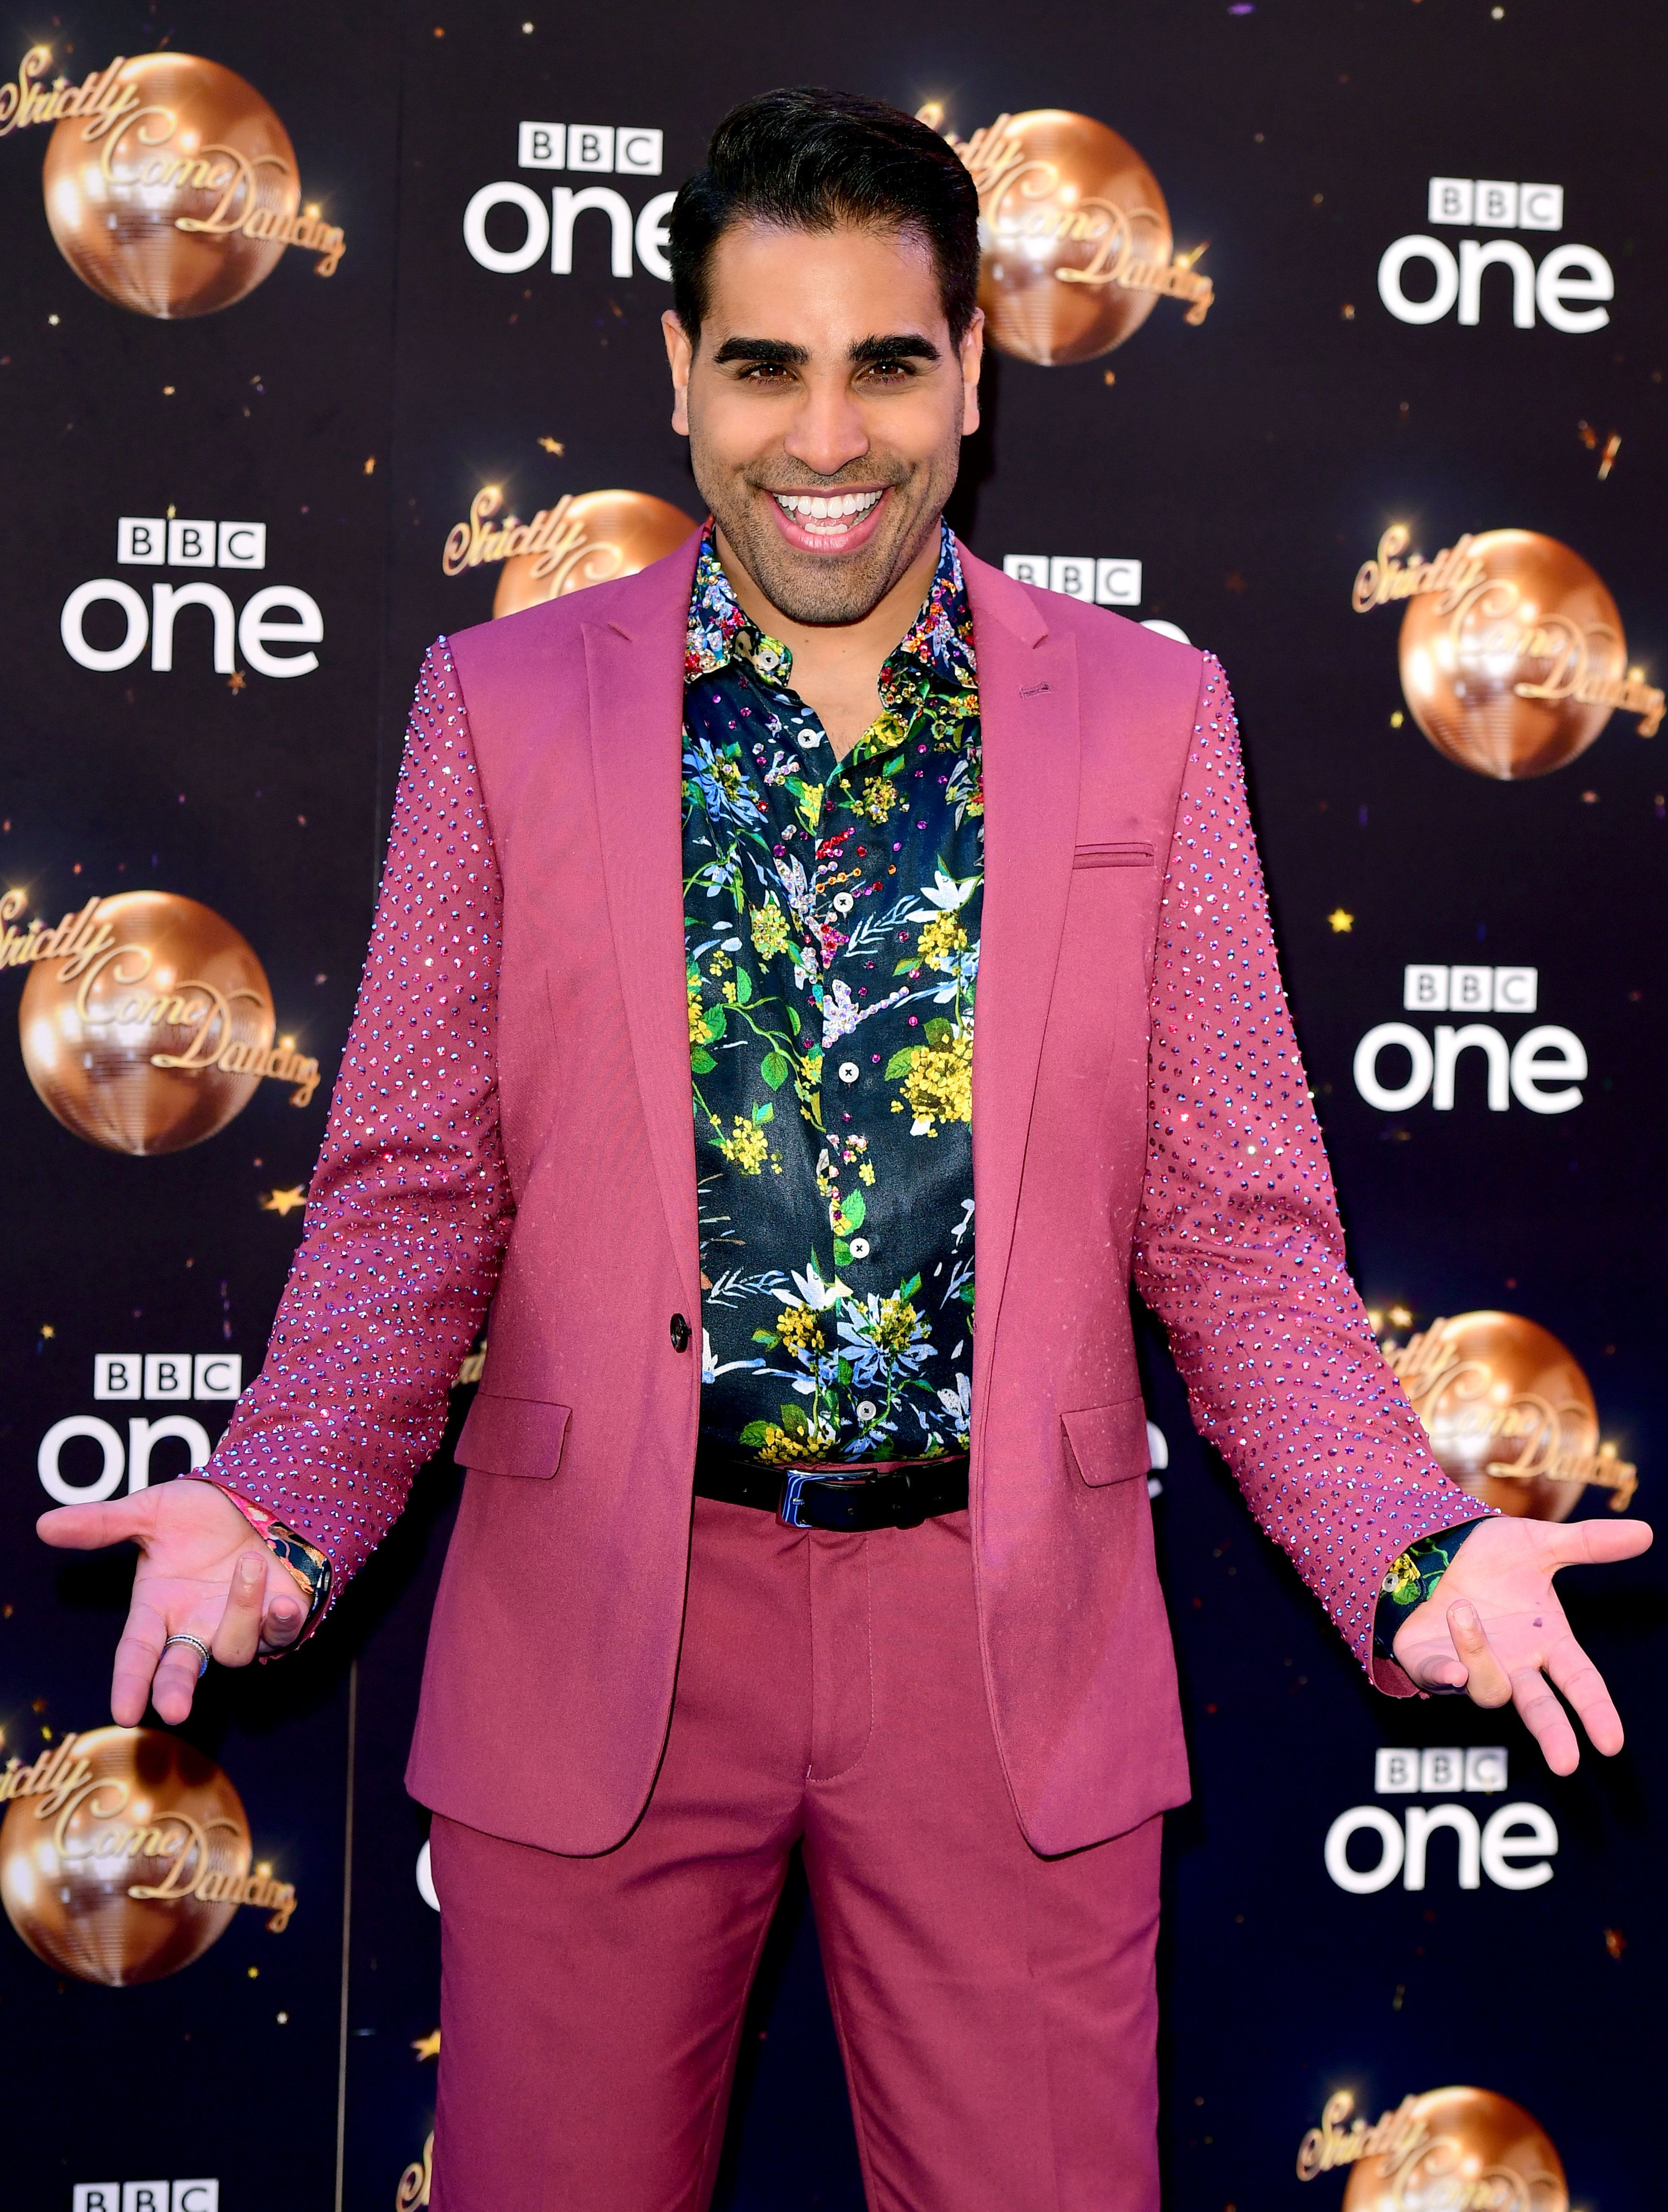 Strictly's Dr. Ranj Singh Says Coming Out To His Wife Was 'Lowest Point In My Life'